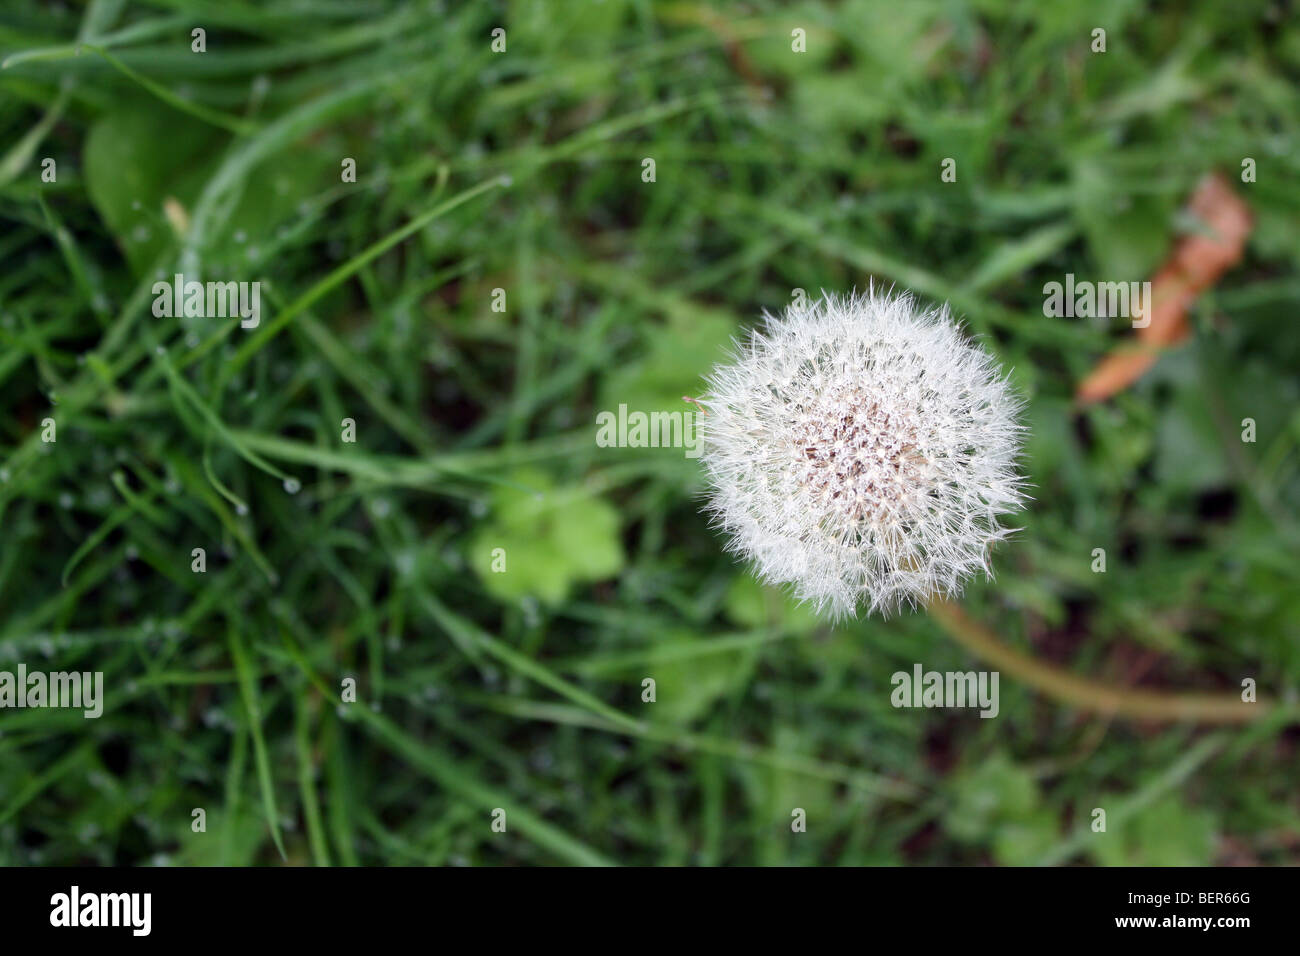 dandelion flower in field - Stock Image